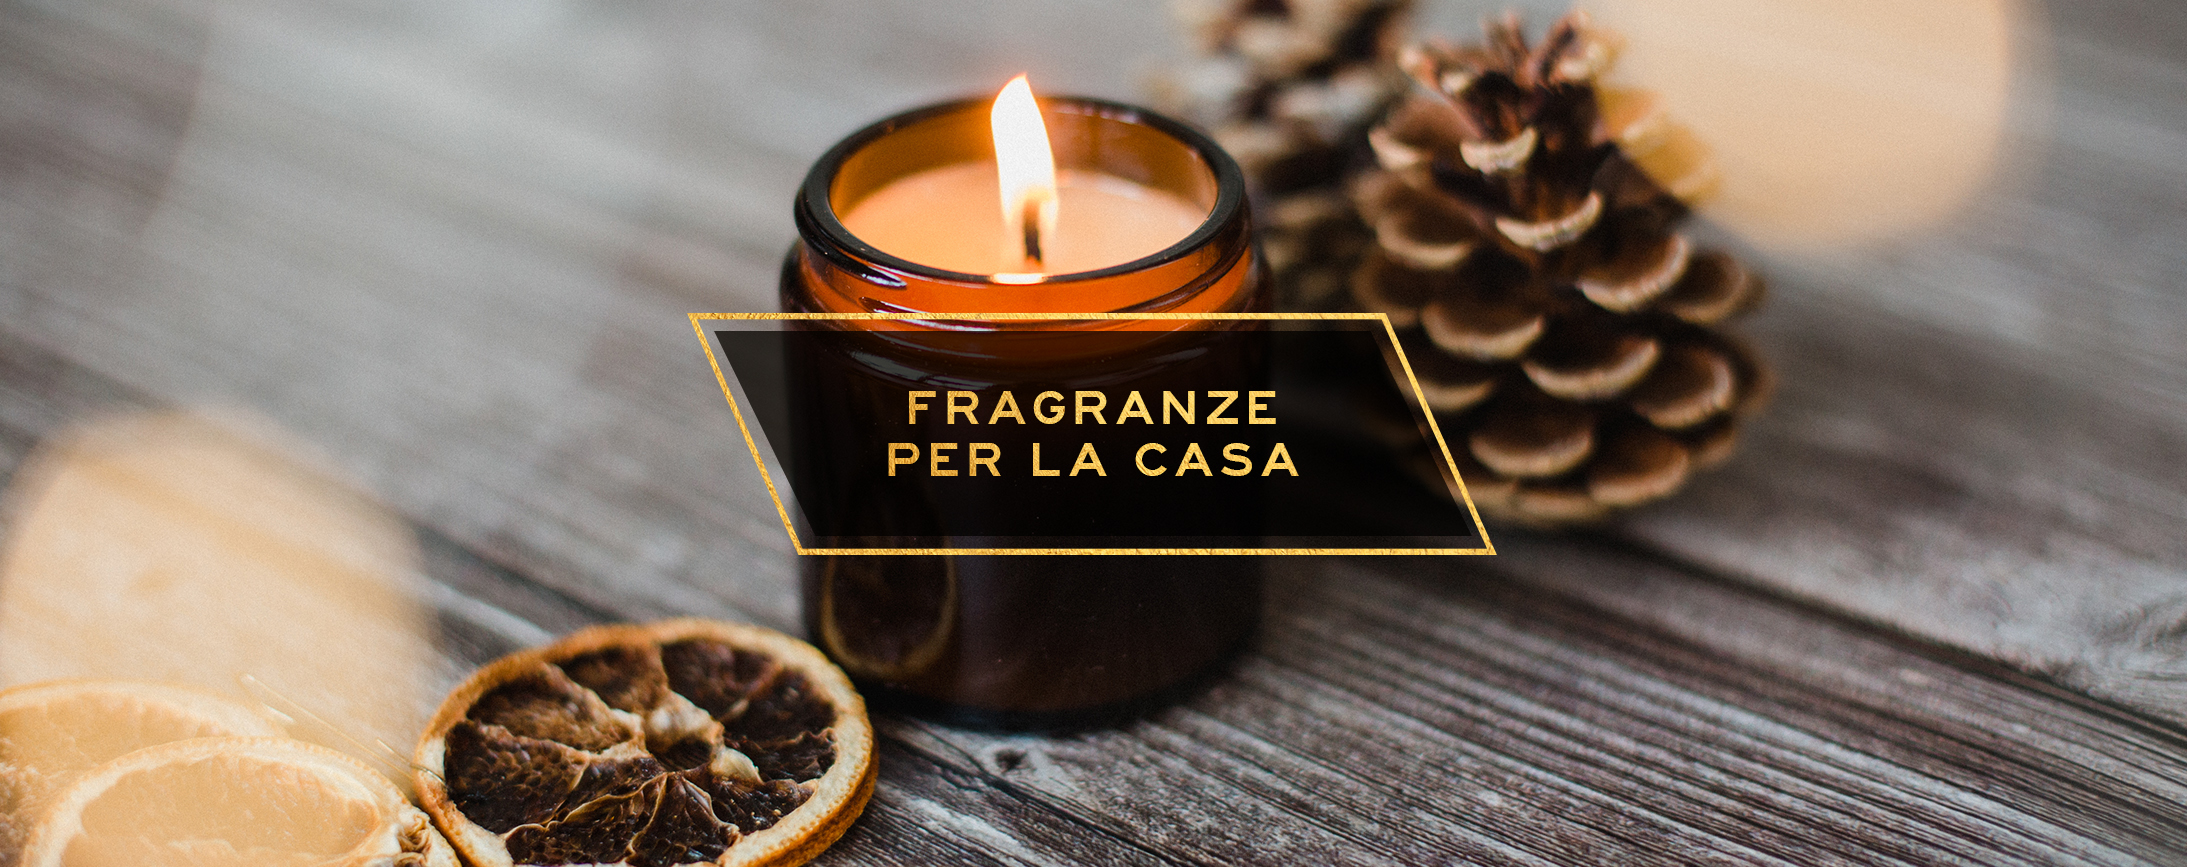 fragranze per la casa